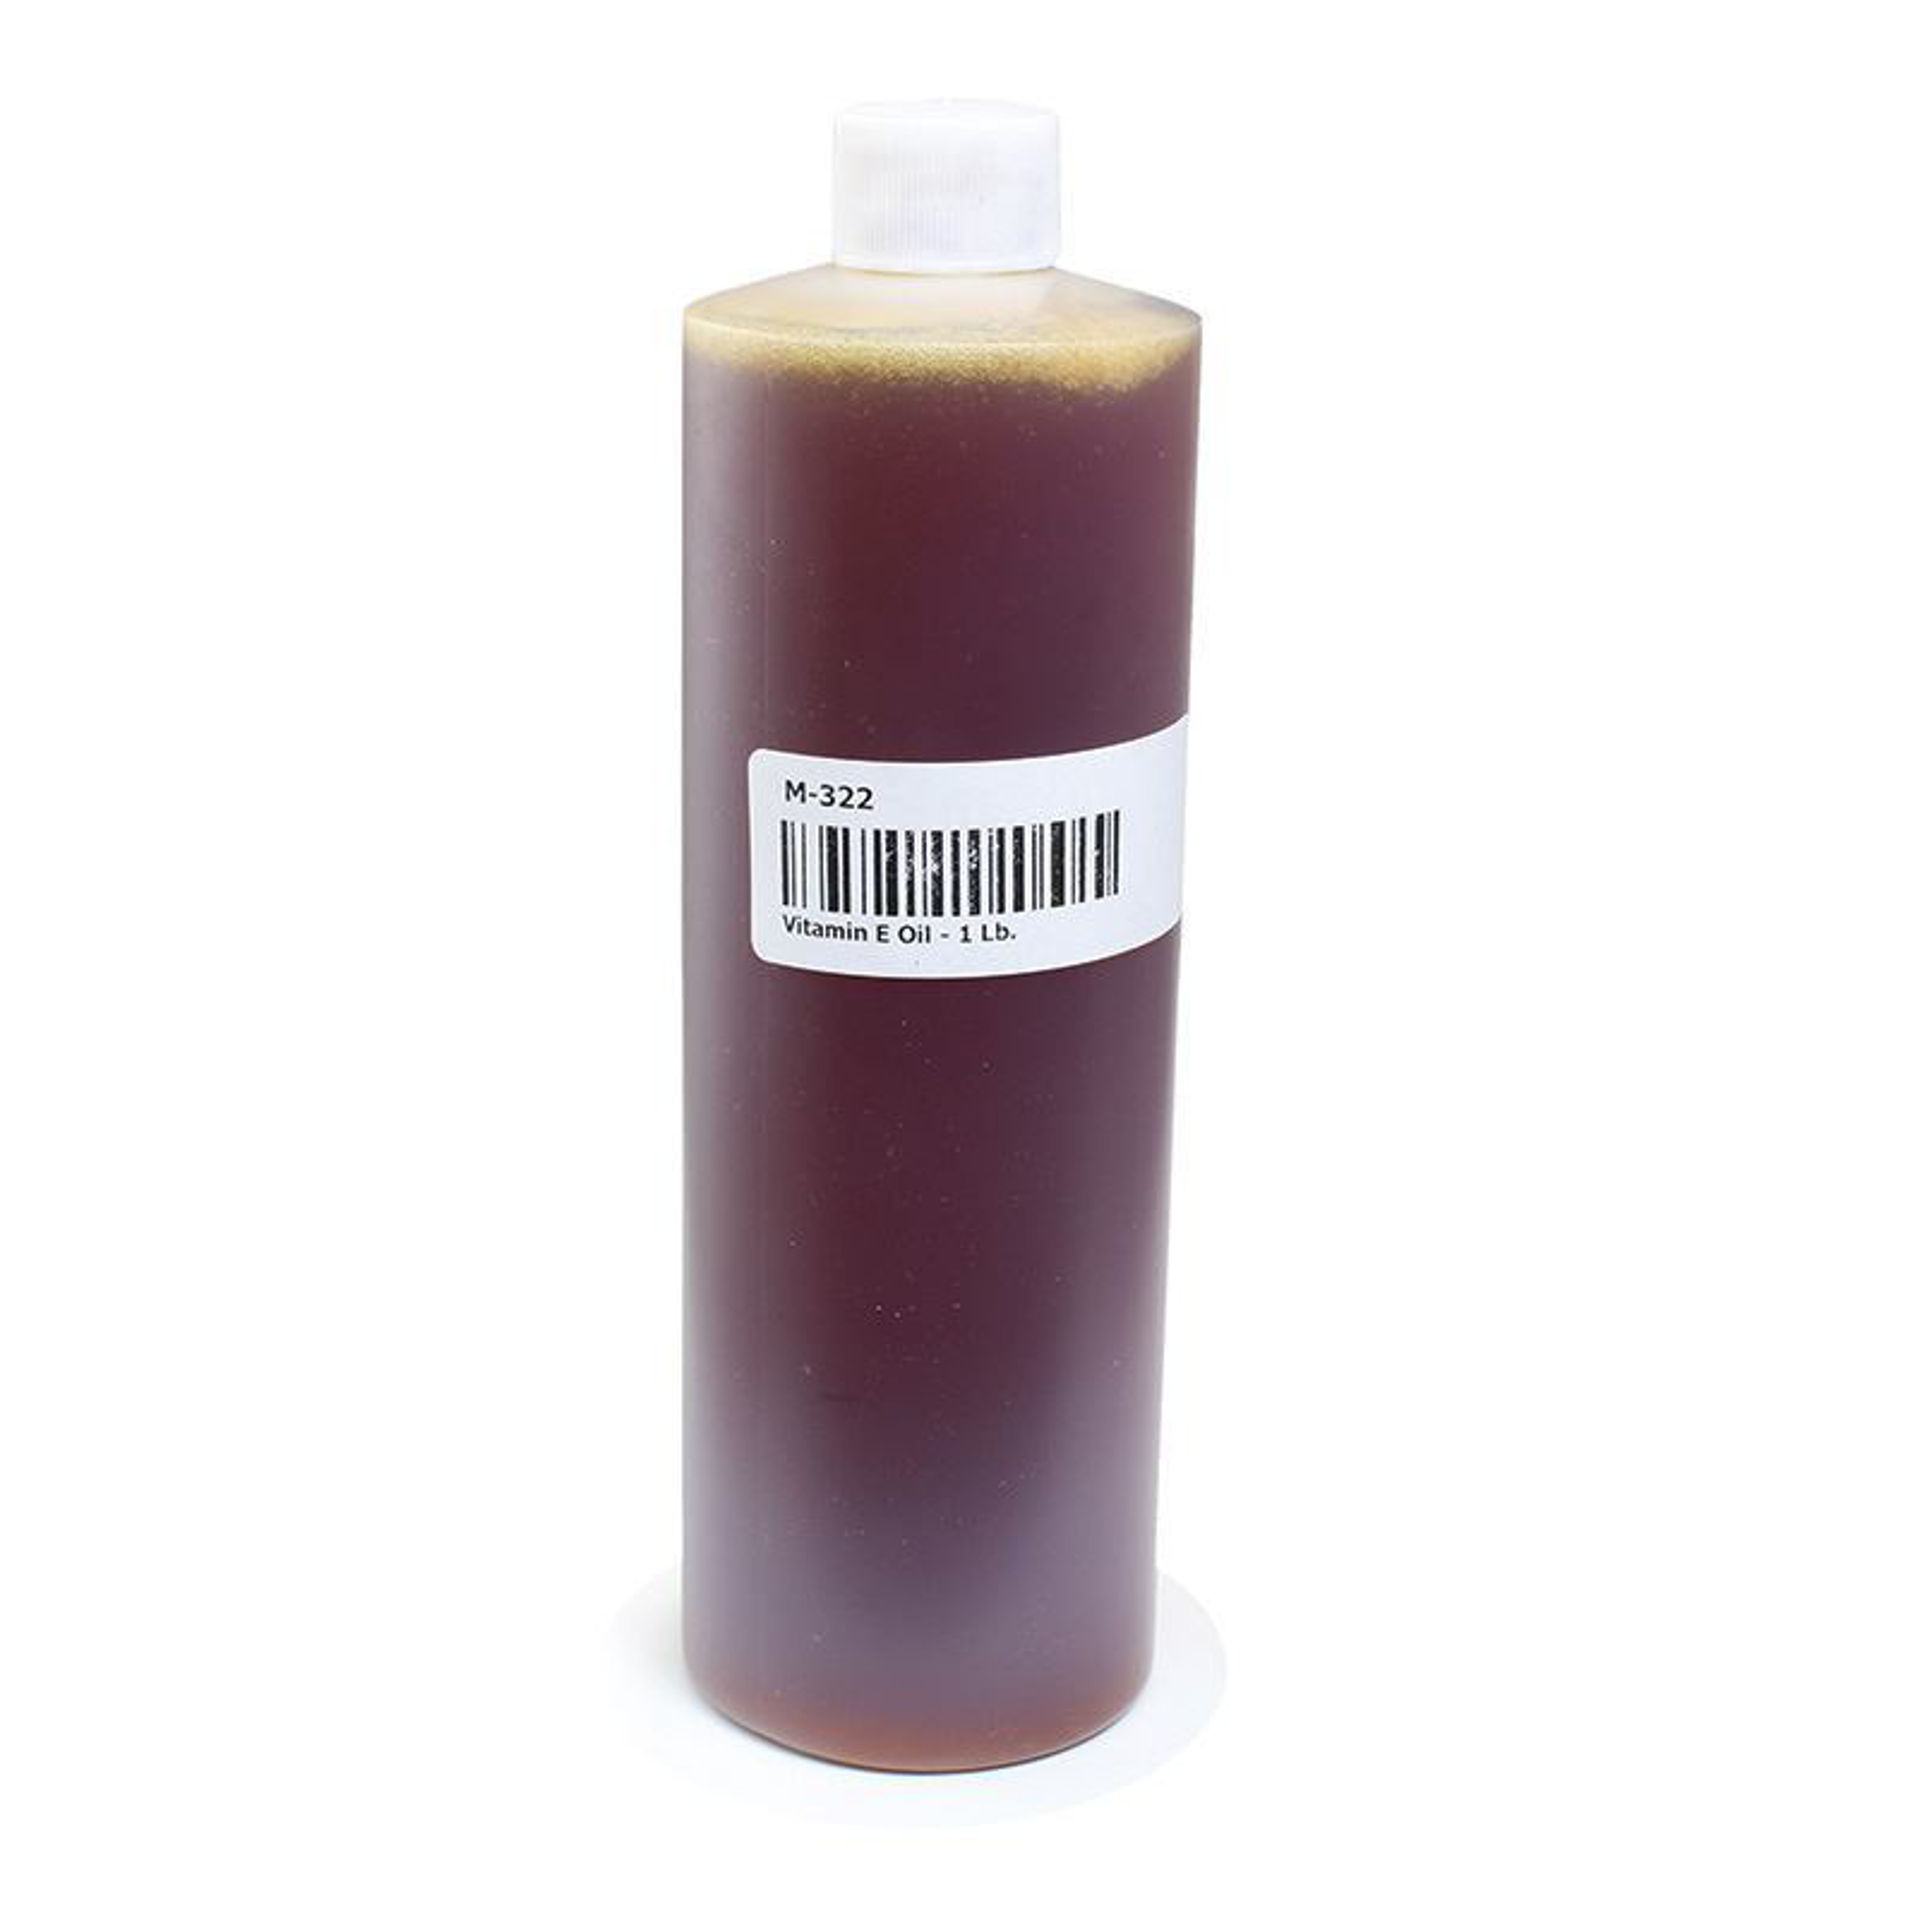 Picture of Vitamin E Oil - 1 Lb.